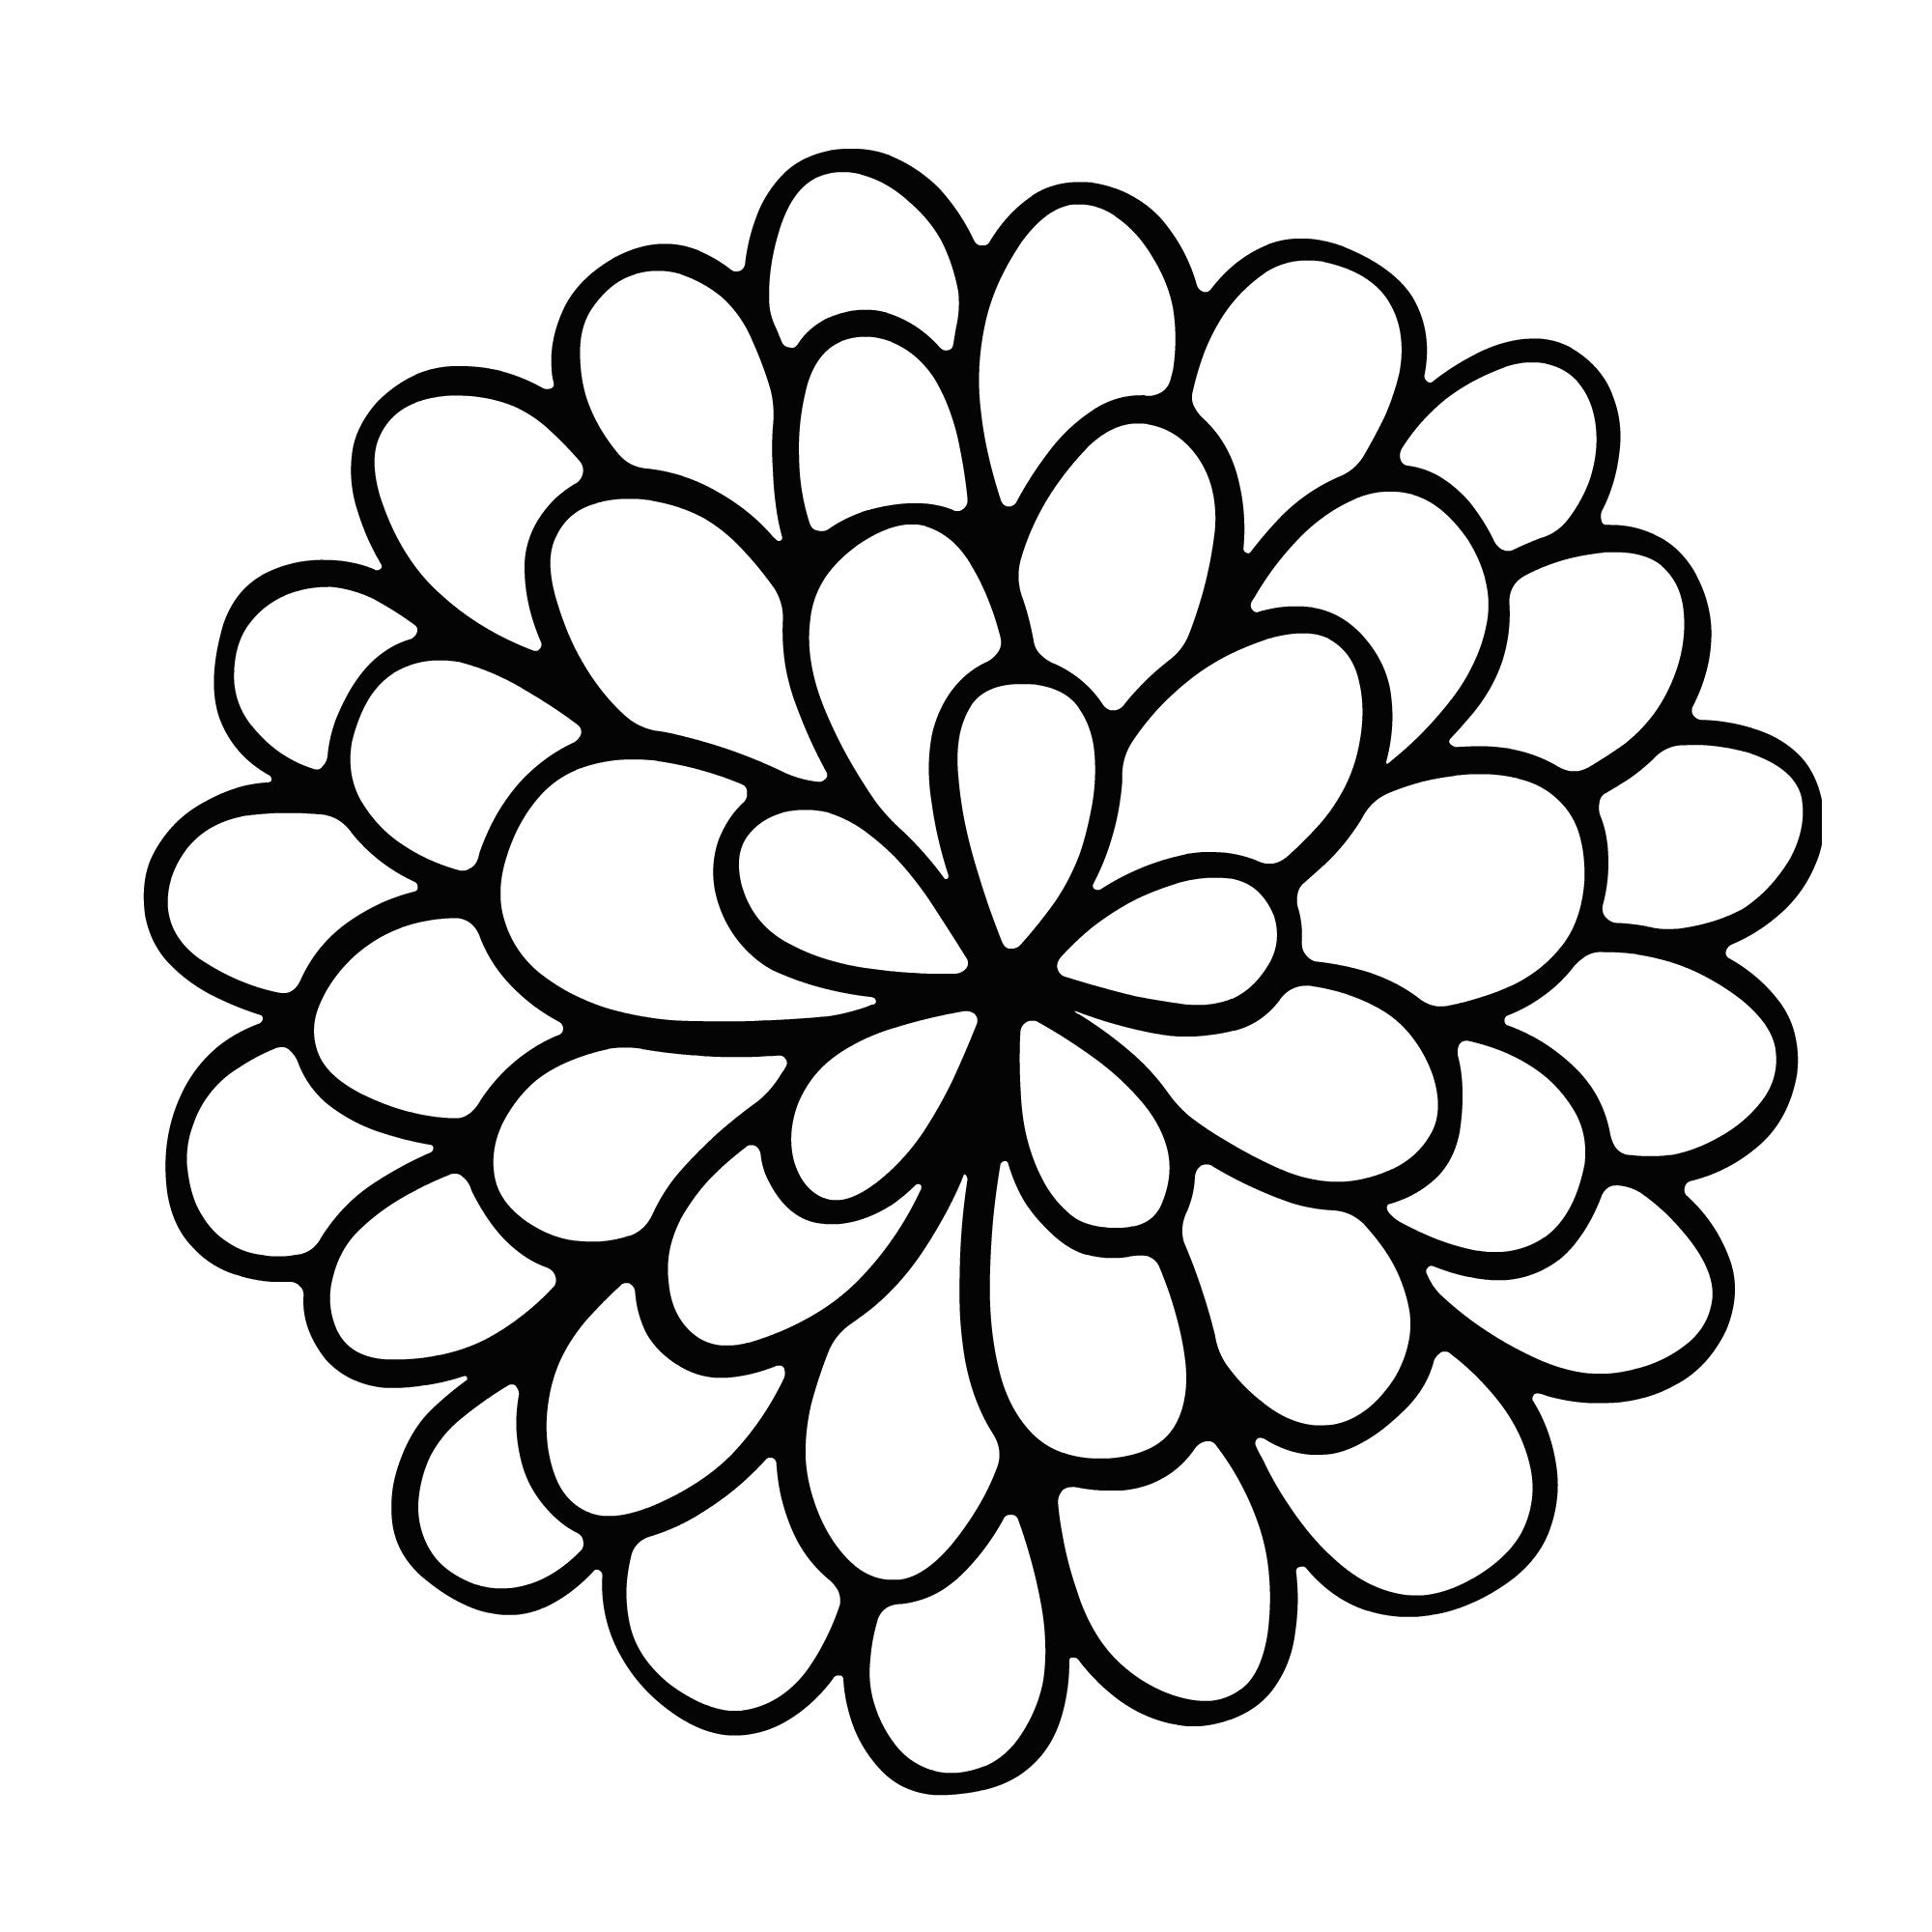 Marigold Flower Drawing Easy Sketch Coloring Page Art